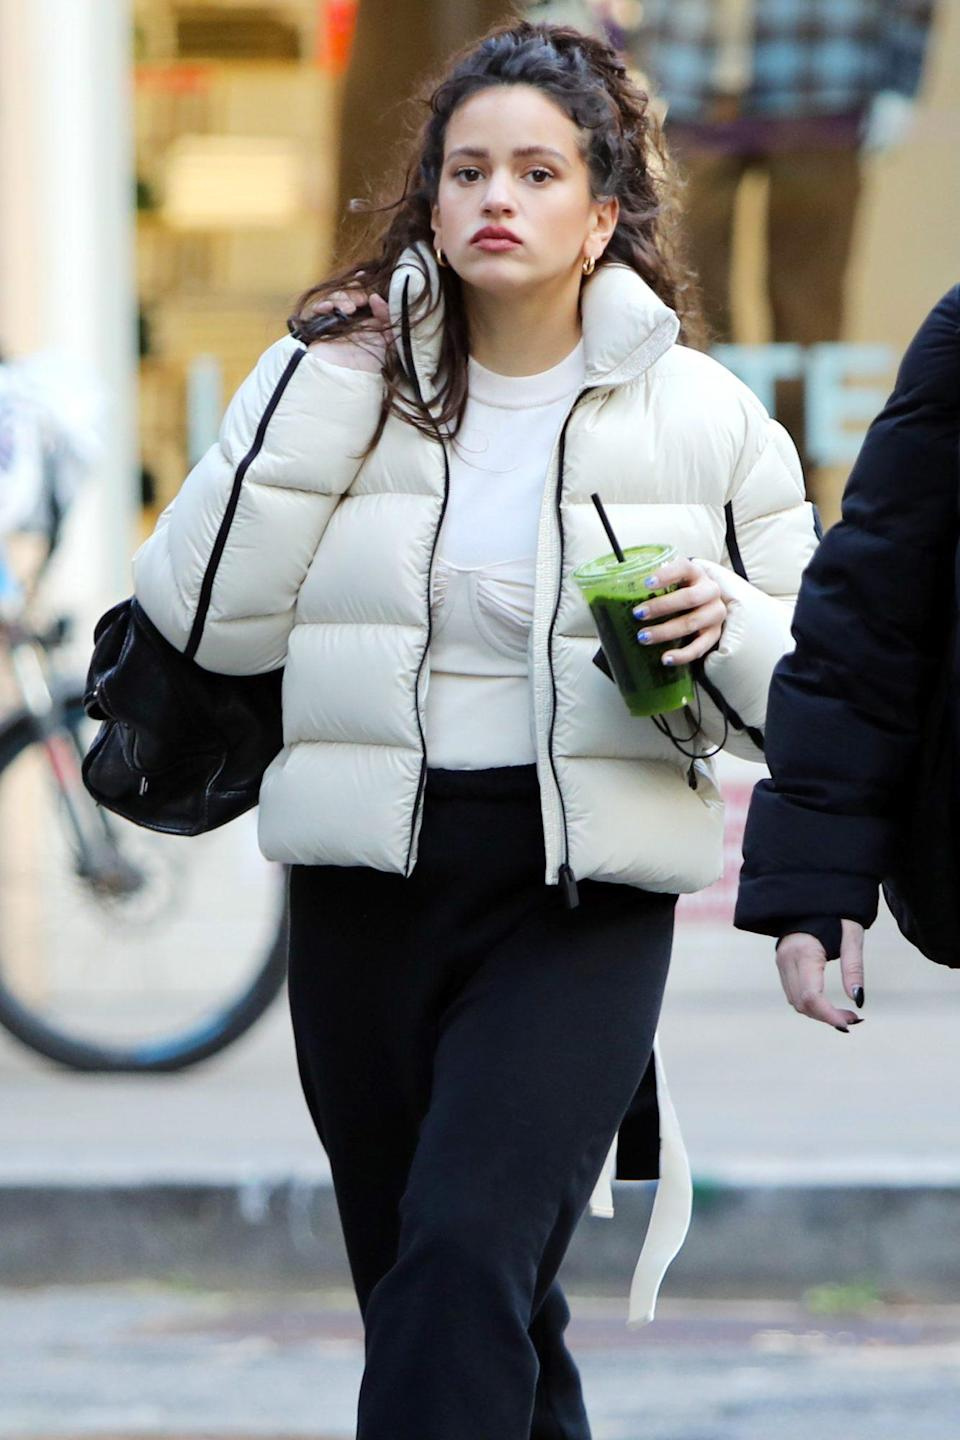 <p>A bundled Rosalía grabs a green juice on Tuesday in New York City.</p>